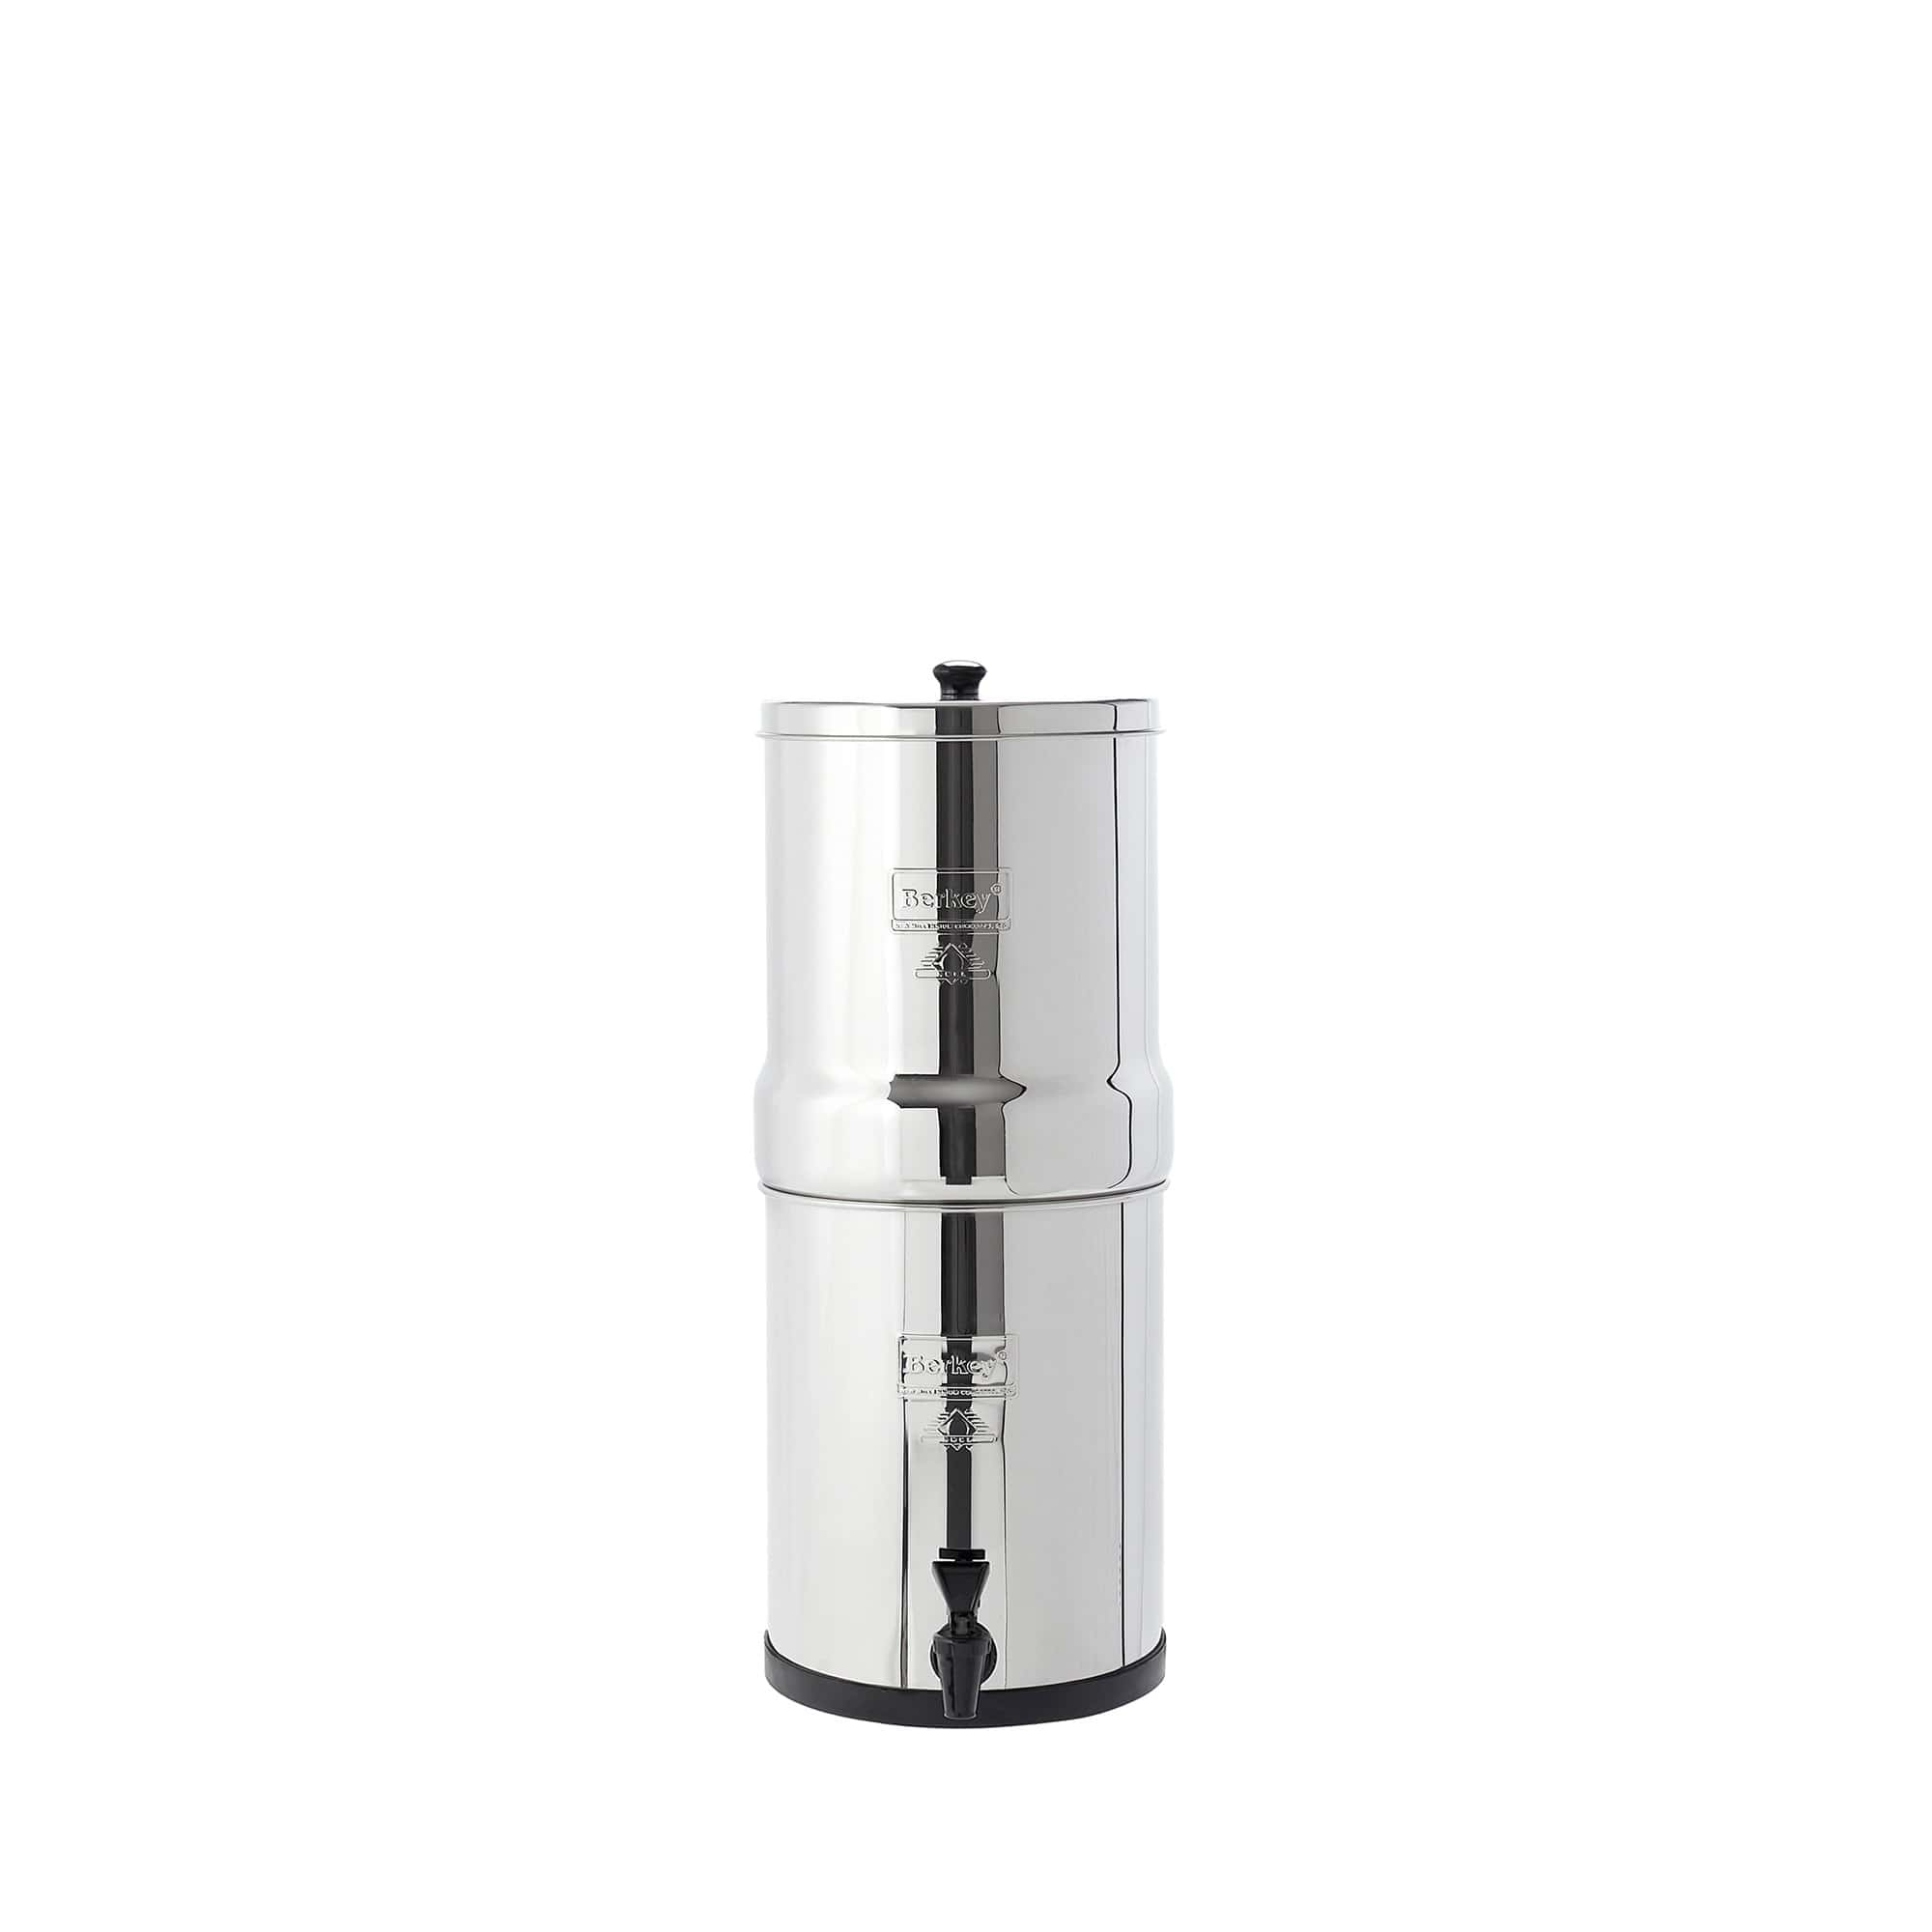 The Travel Berkey® System